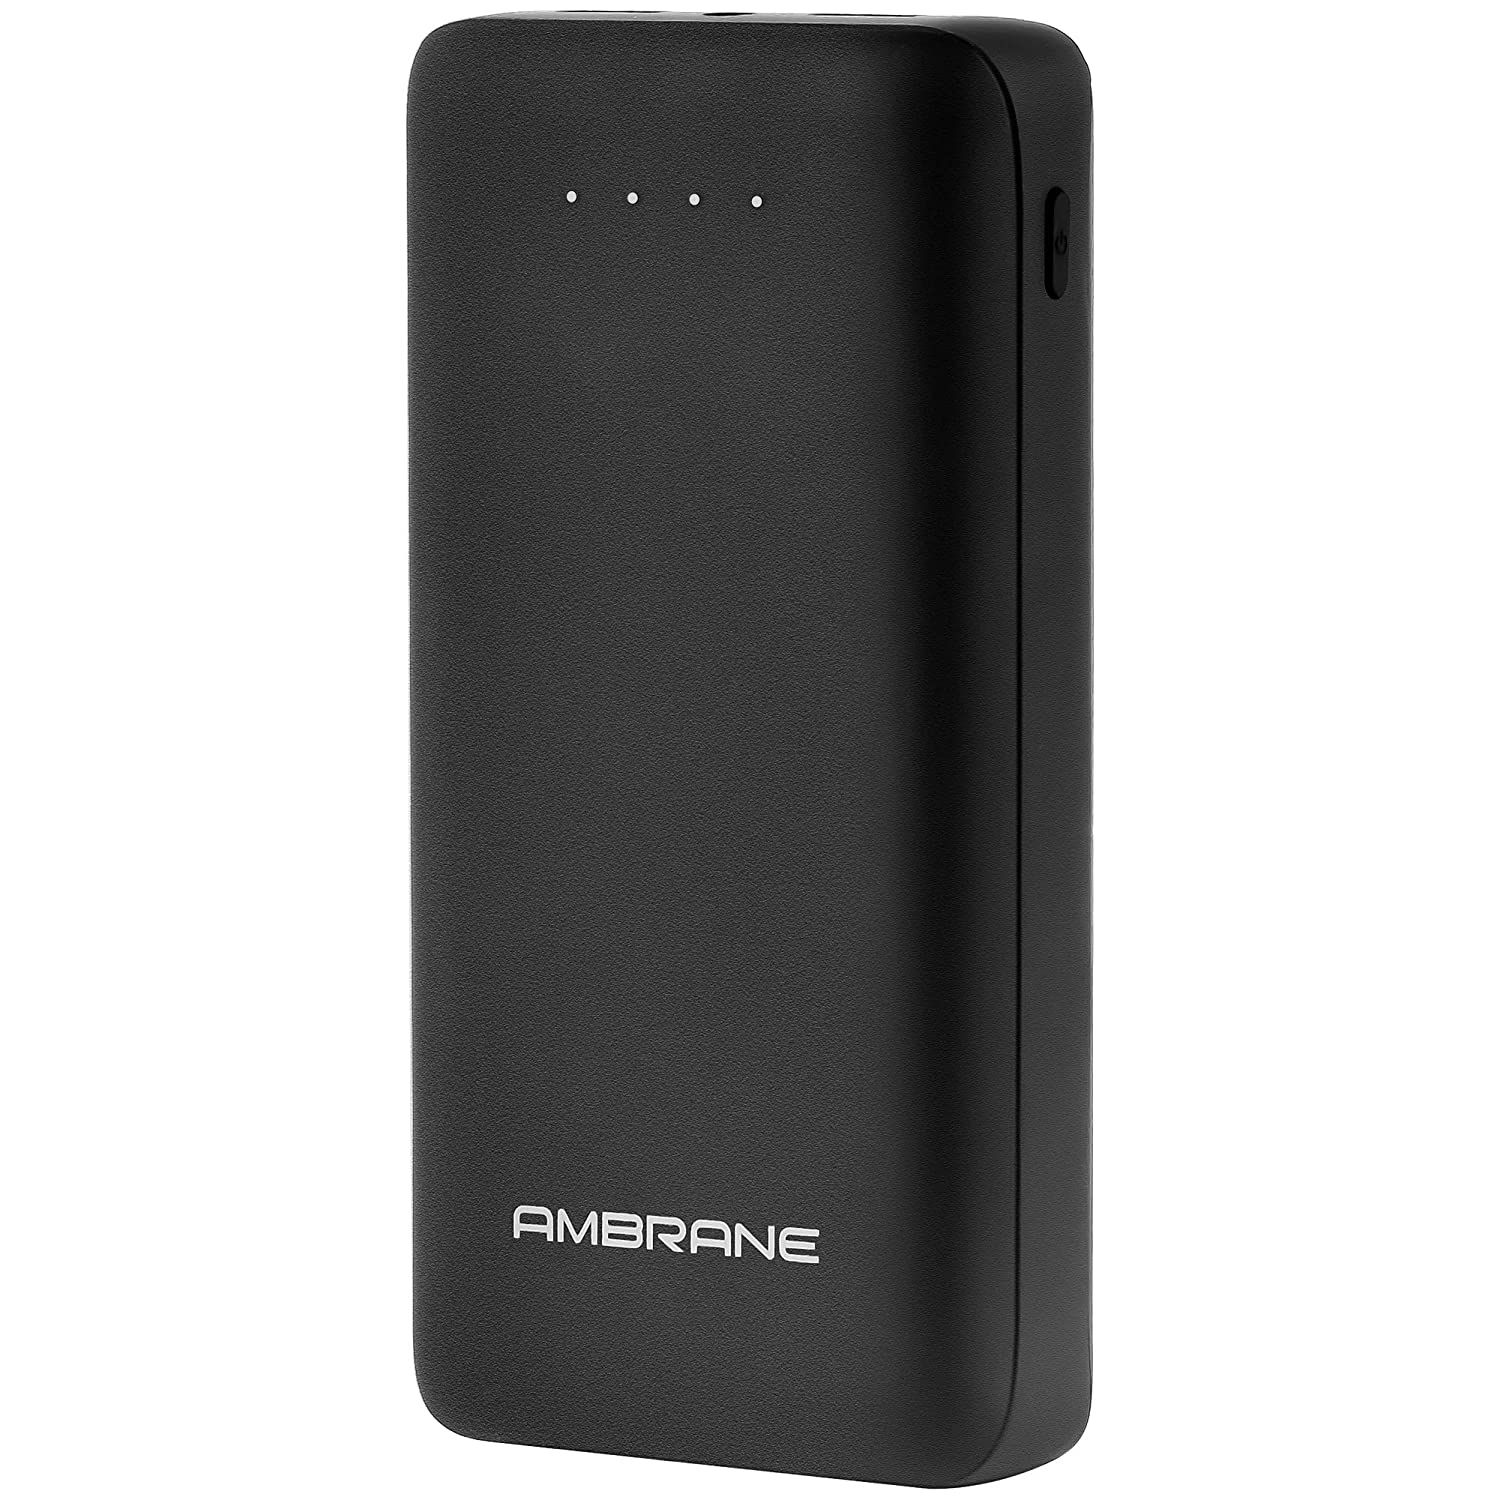 Ambrane 27000mAh Li-Polymer Powerbank with Type C and USB Ports | Fast Charging for Smartphones, Smart Watches, Neckbands & Other Devices (PP-30 Pro, Black)